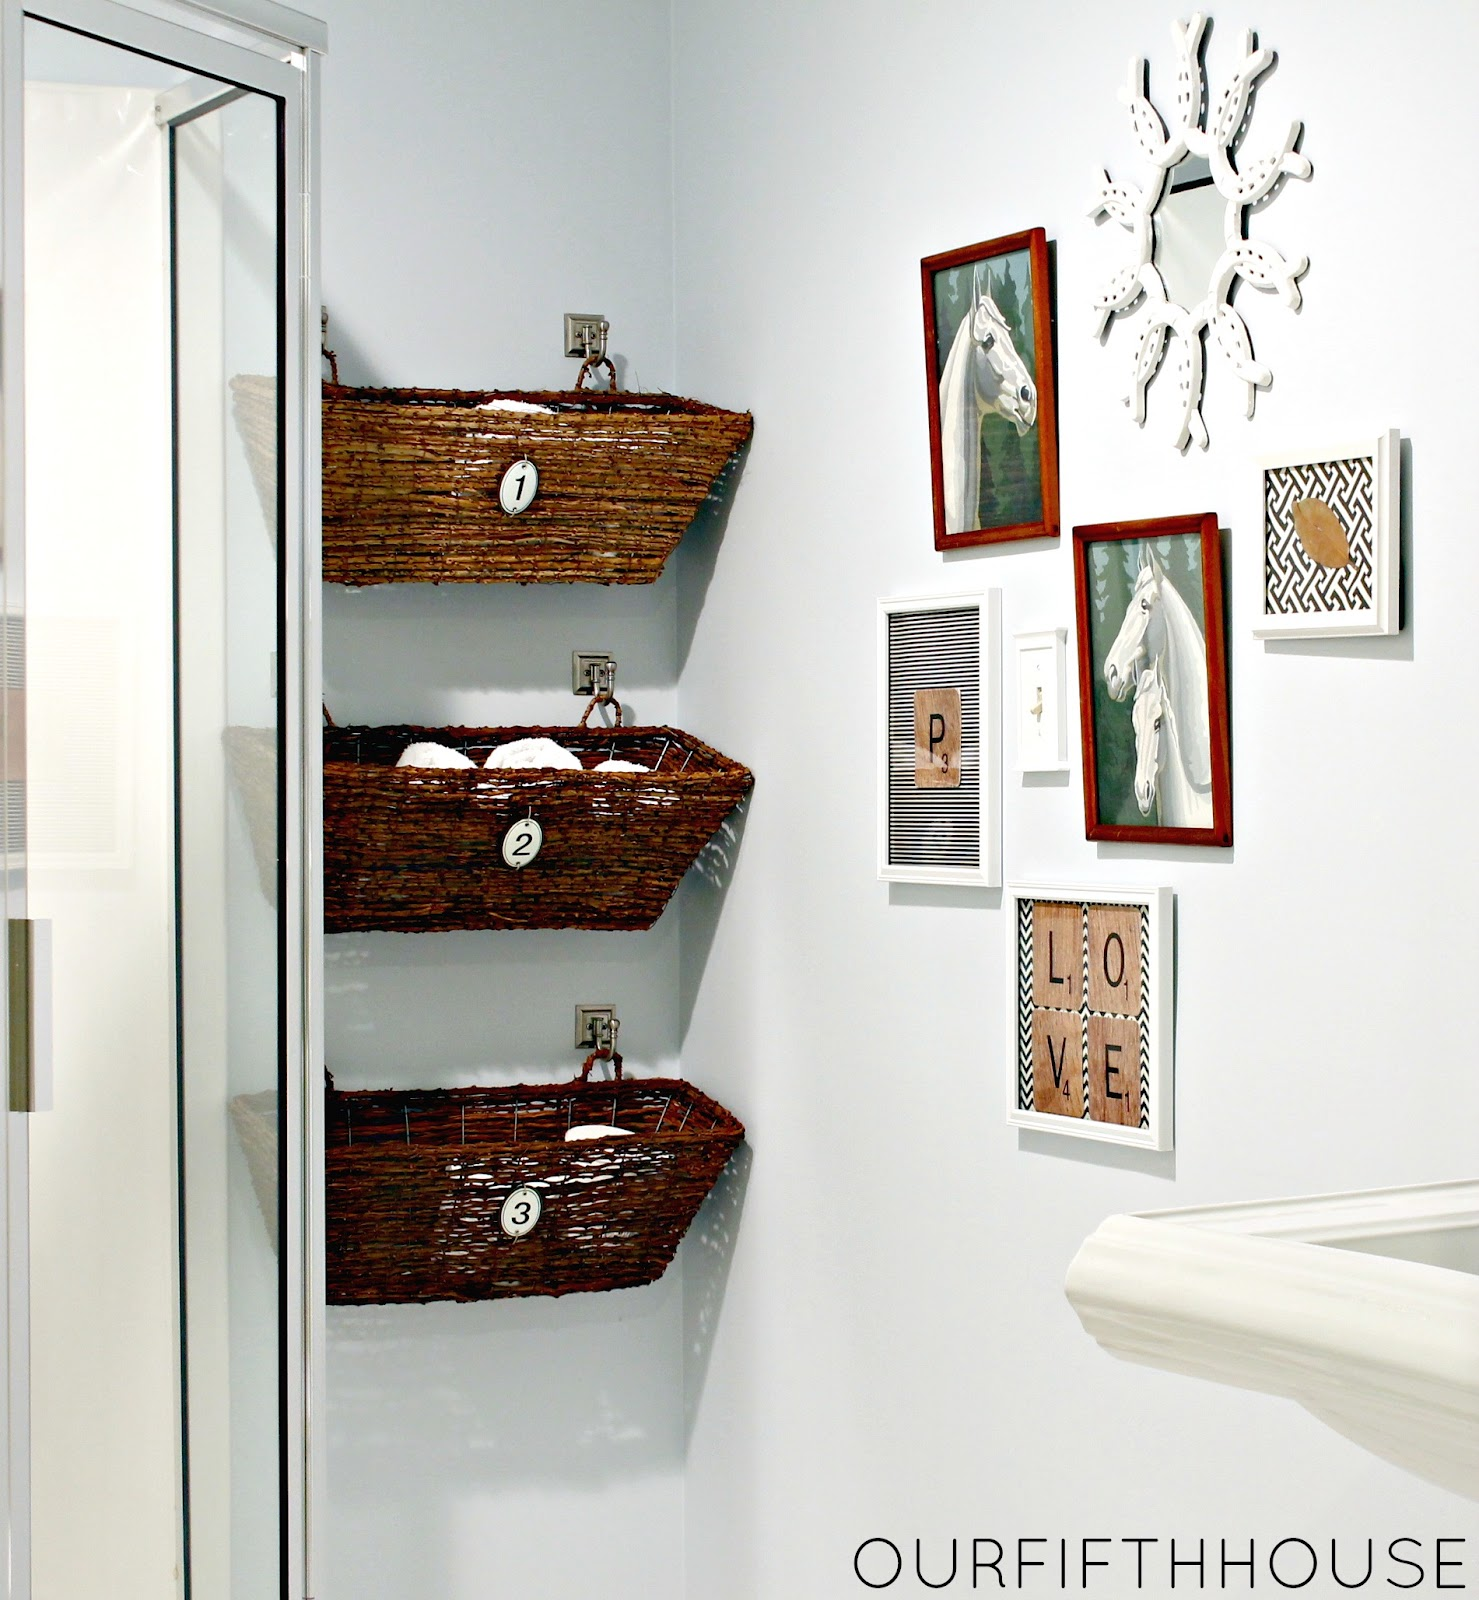 Bathroom cabinet storage solutions - 12 Small Bathroom Storage Ideas Wall Storage Solutons And Shelves For Bathrooms